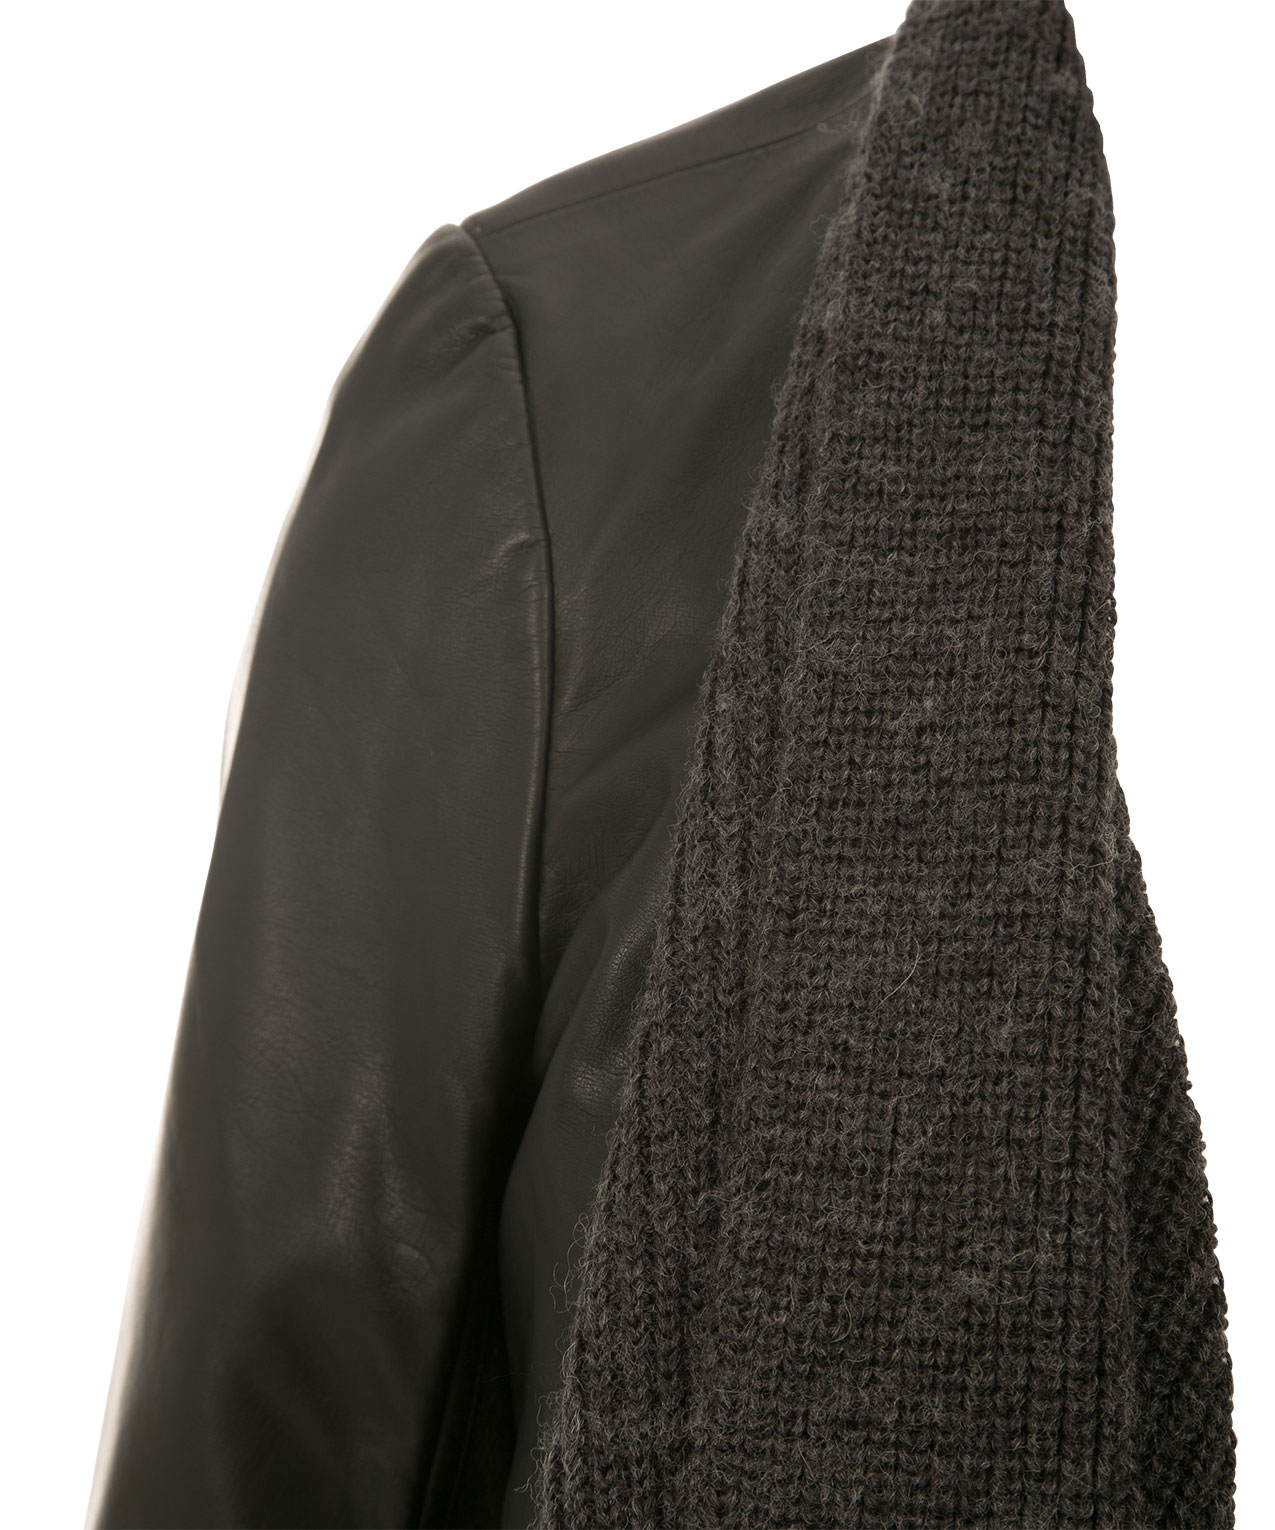 a southern boots style leather the knee jacket drapes over faux drawl winter drape fashion